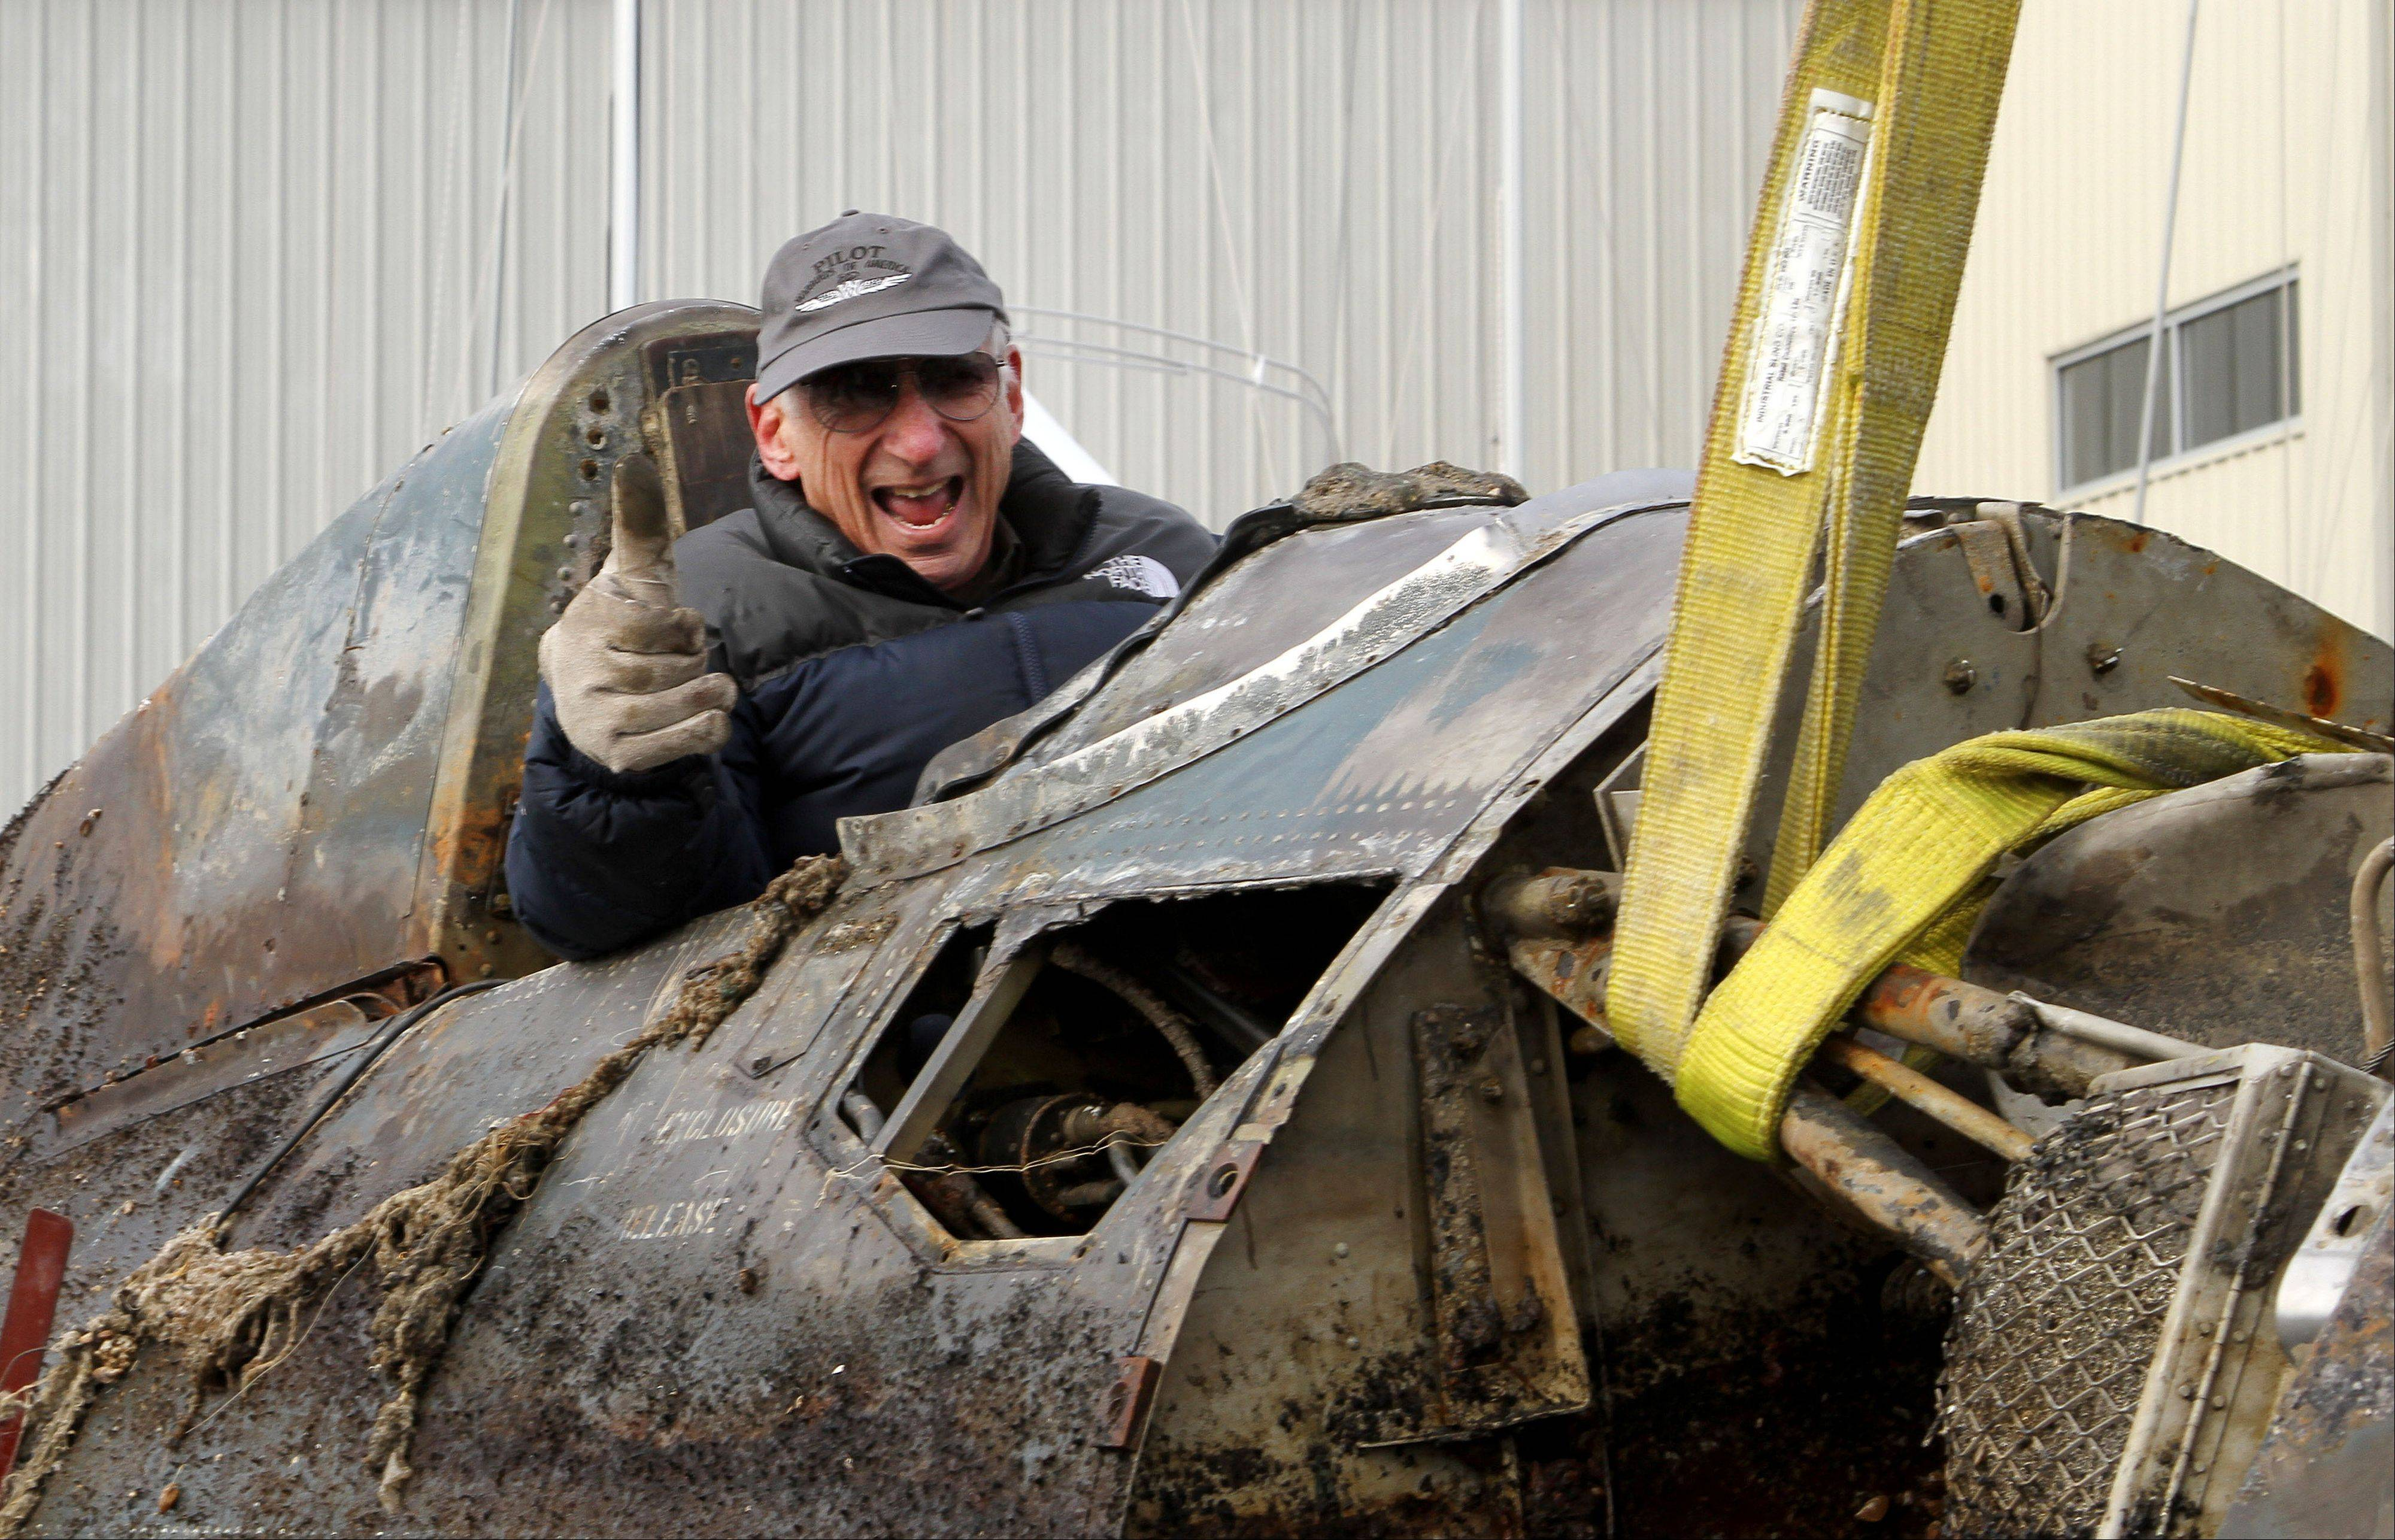 Chuck Greenhill of Mettawa is the first person to sit in the cockpit of this World War II era FM-2 Wildcat after it was pulled out of the water at Larsen Marine in Waukegan Friday. Greenhill helped sponsor the salvage effort.